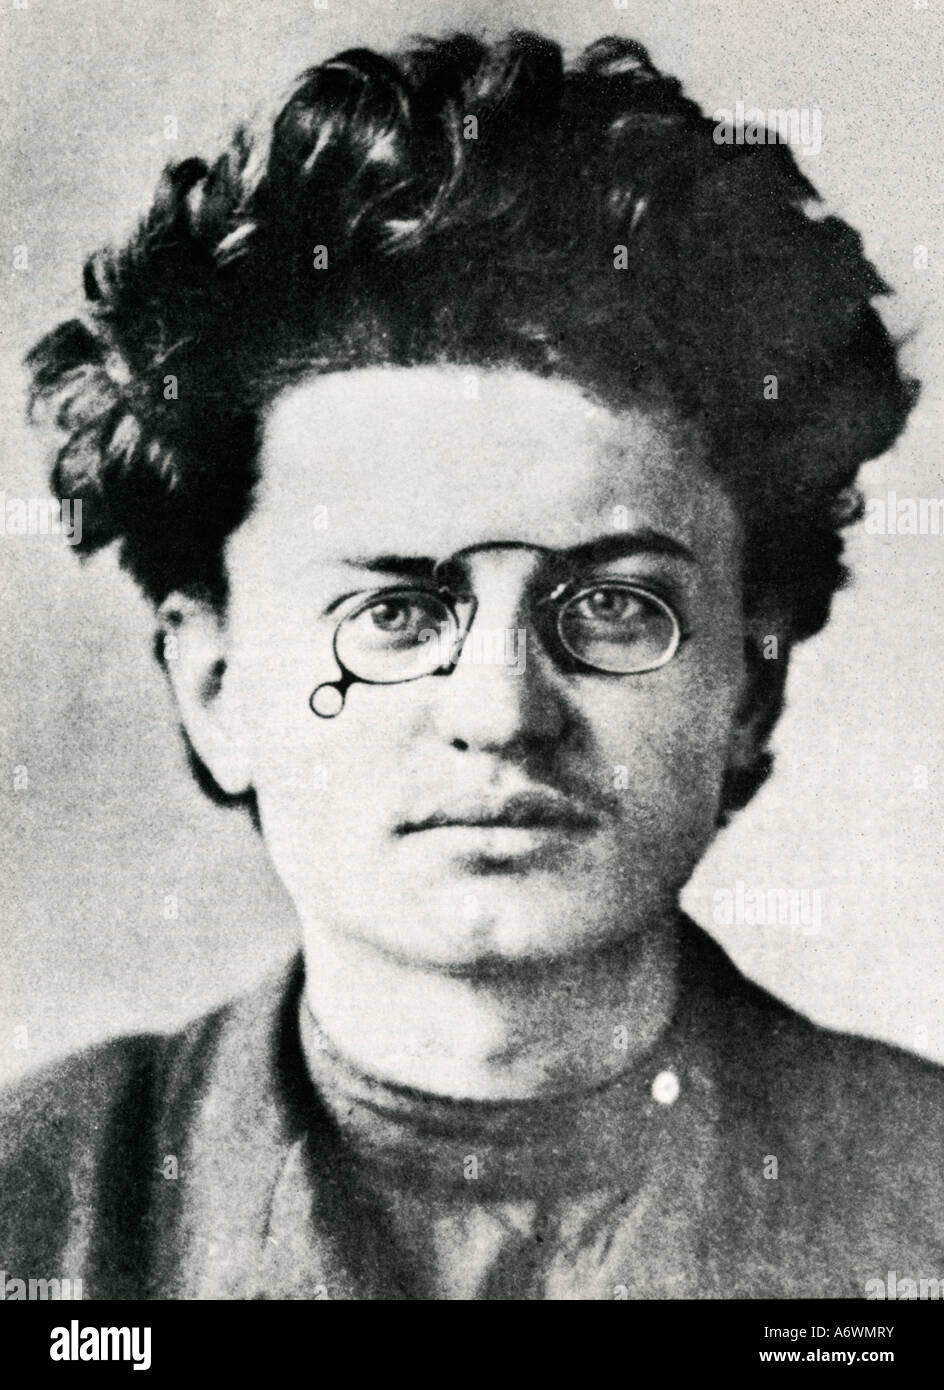 Leon Trotski born Lev Davidovitch Bronstein as photographed by the police after his first arrest in 1898 - Stock Image